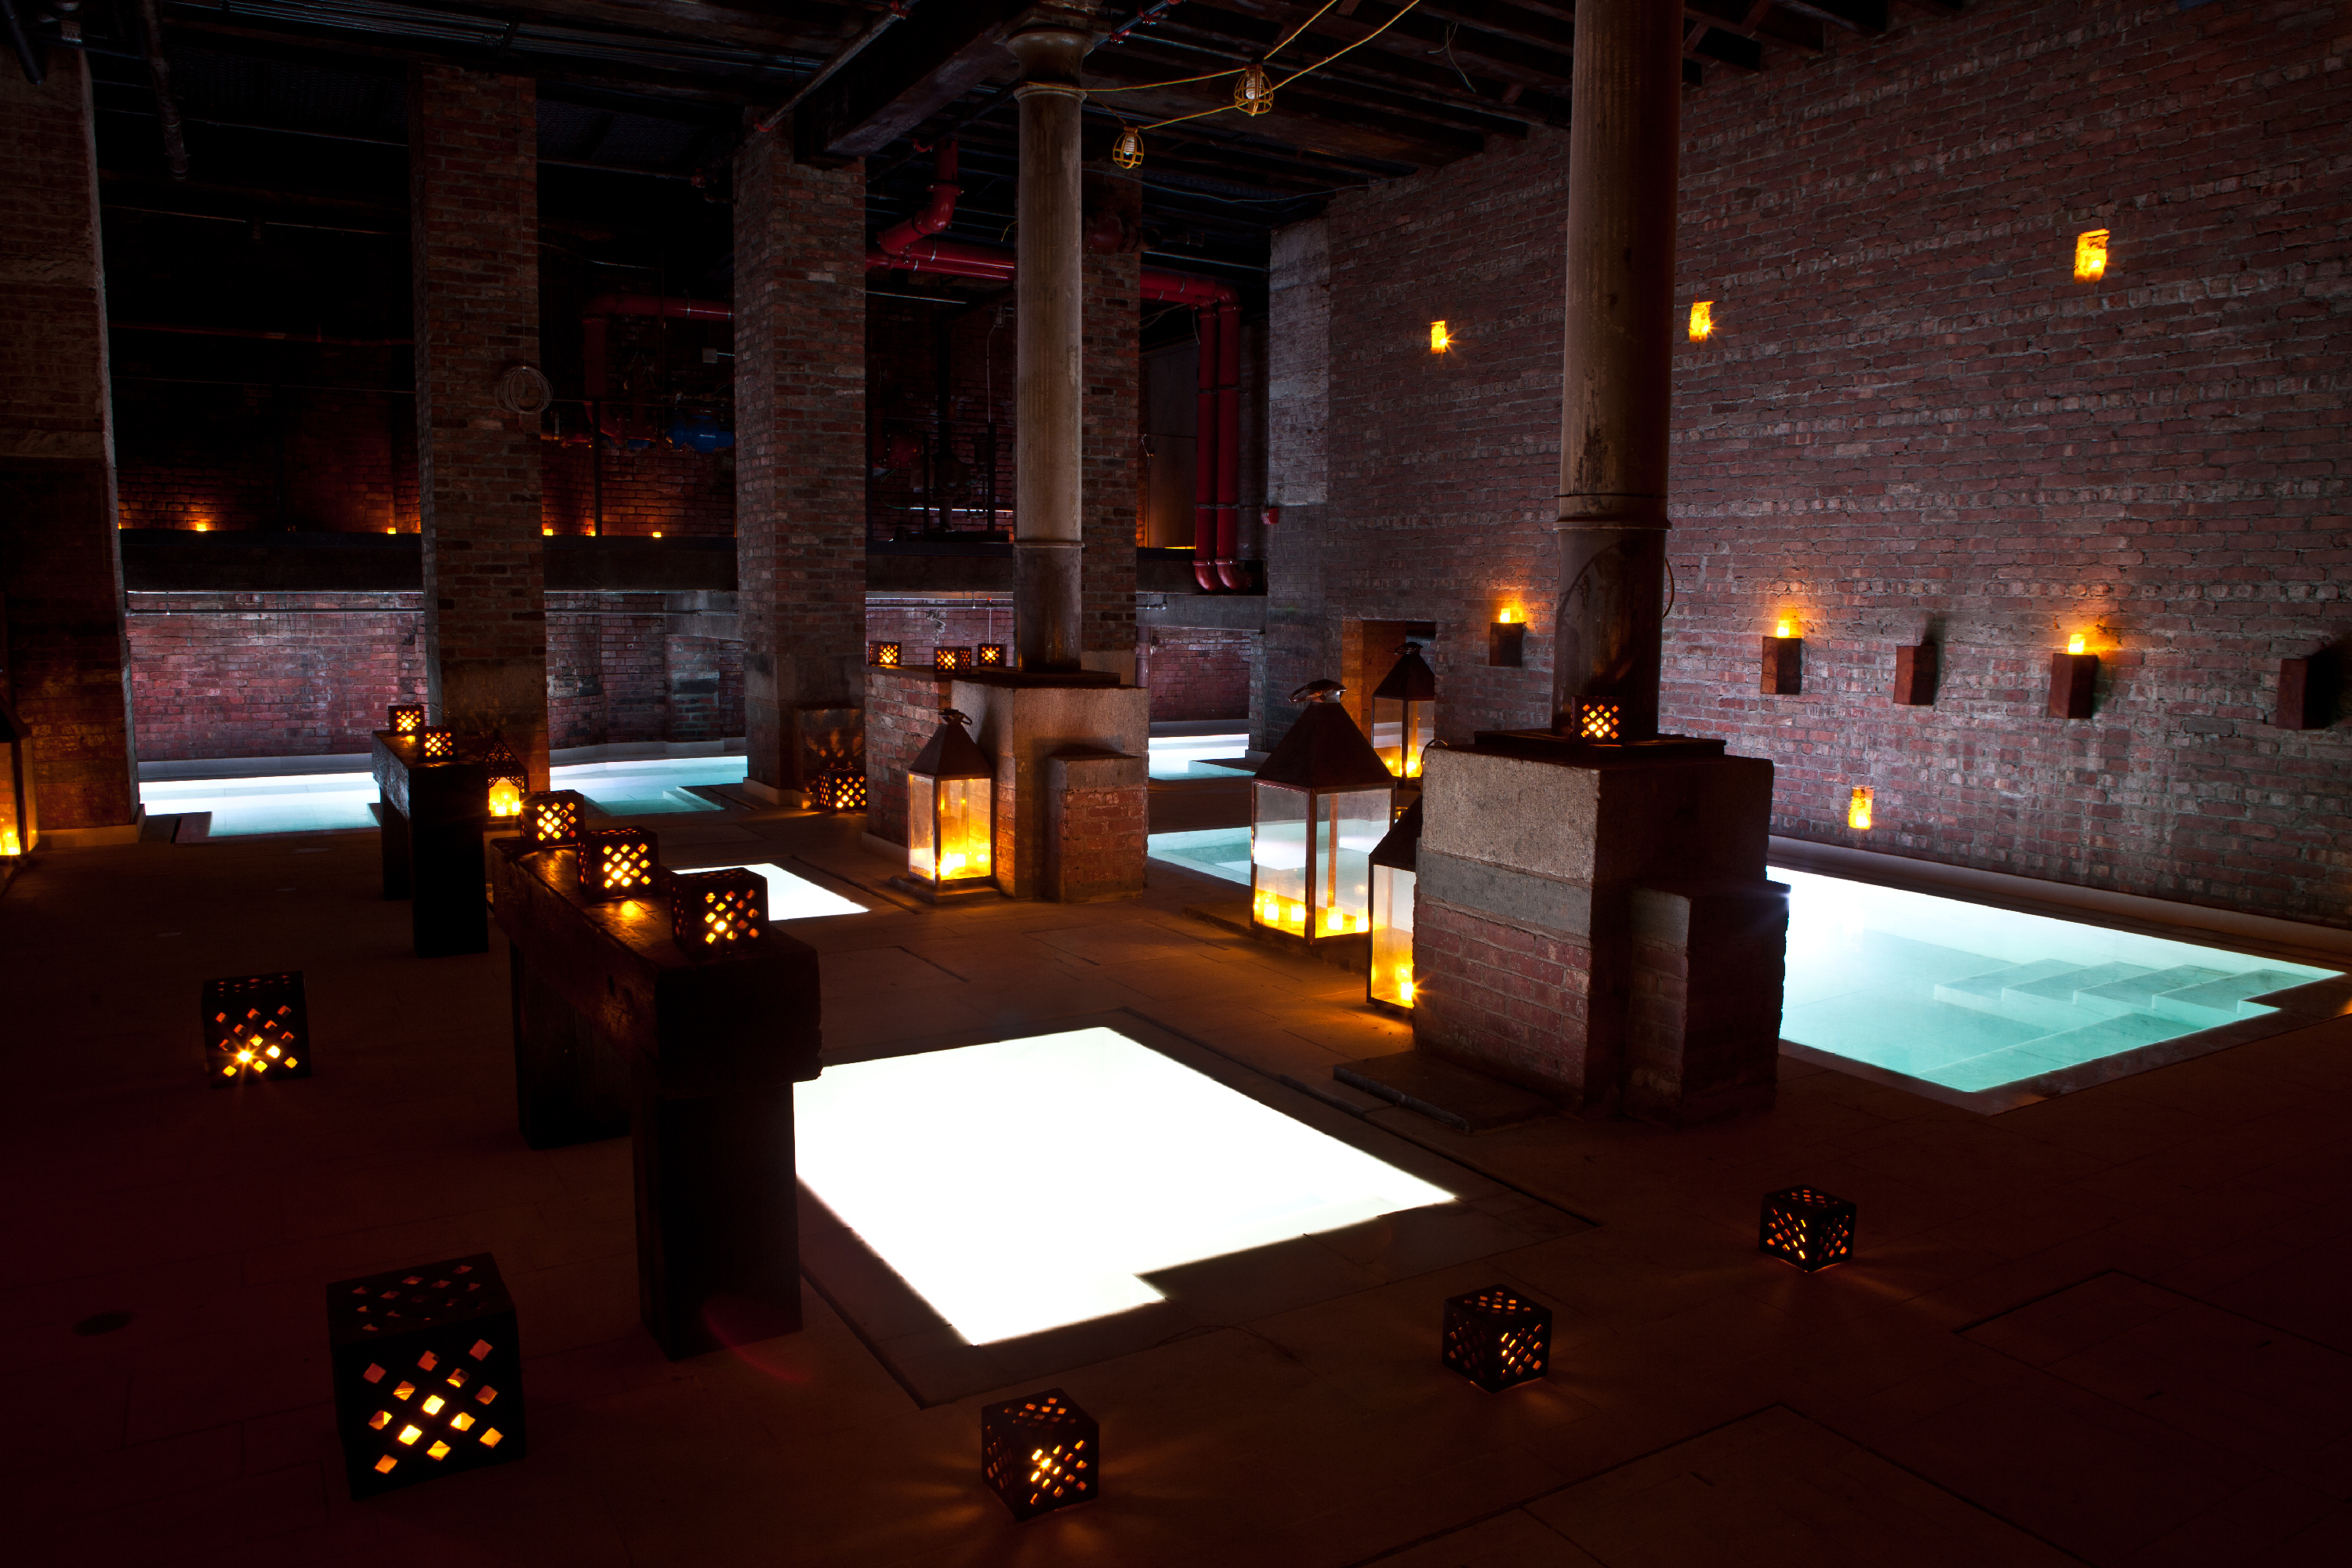 Sojo Spa Nj Groupon Aire Ancient Baths Health And Beauty In Tribeca New York